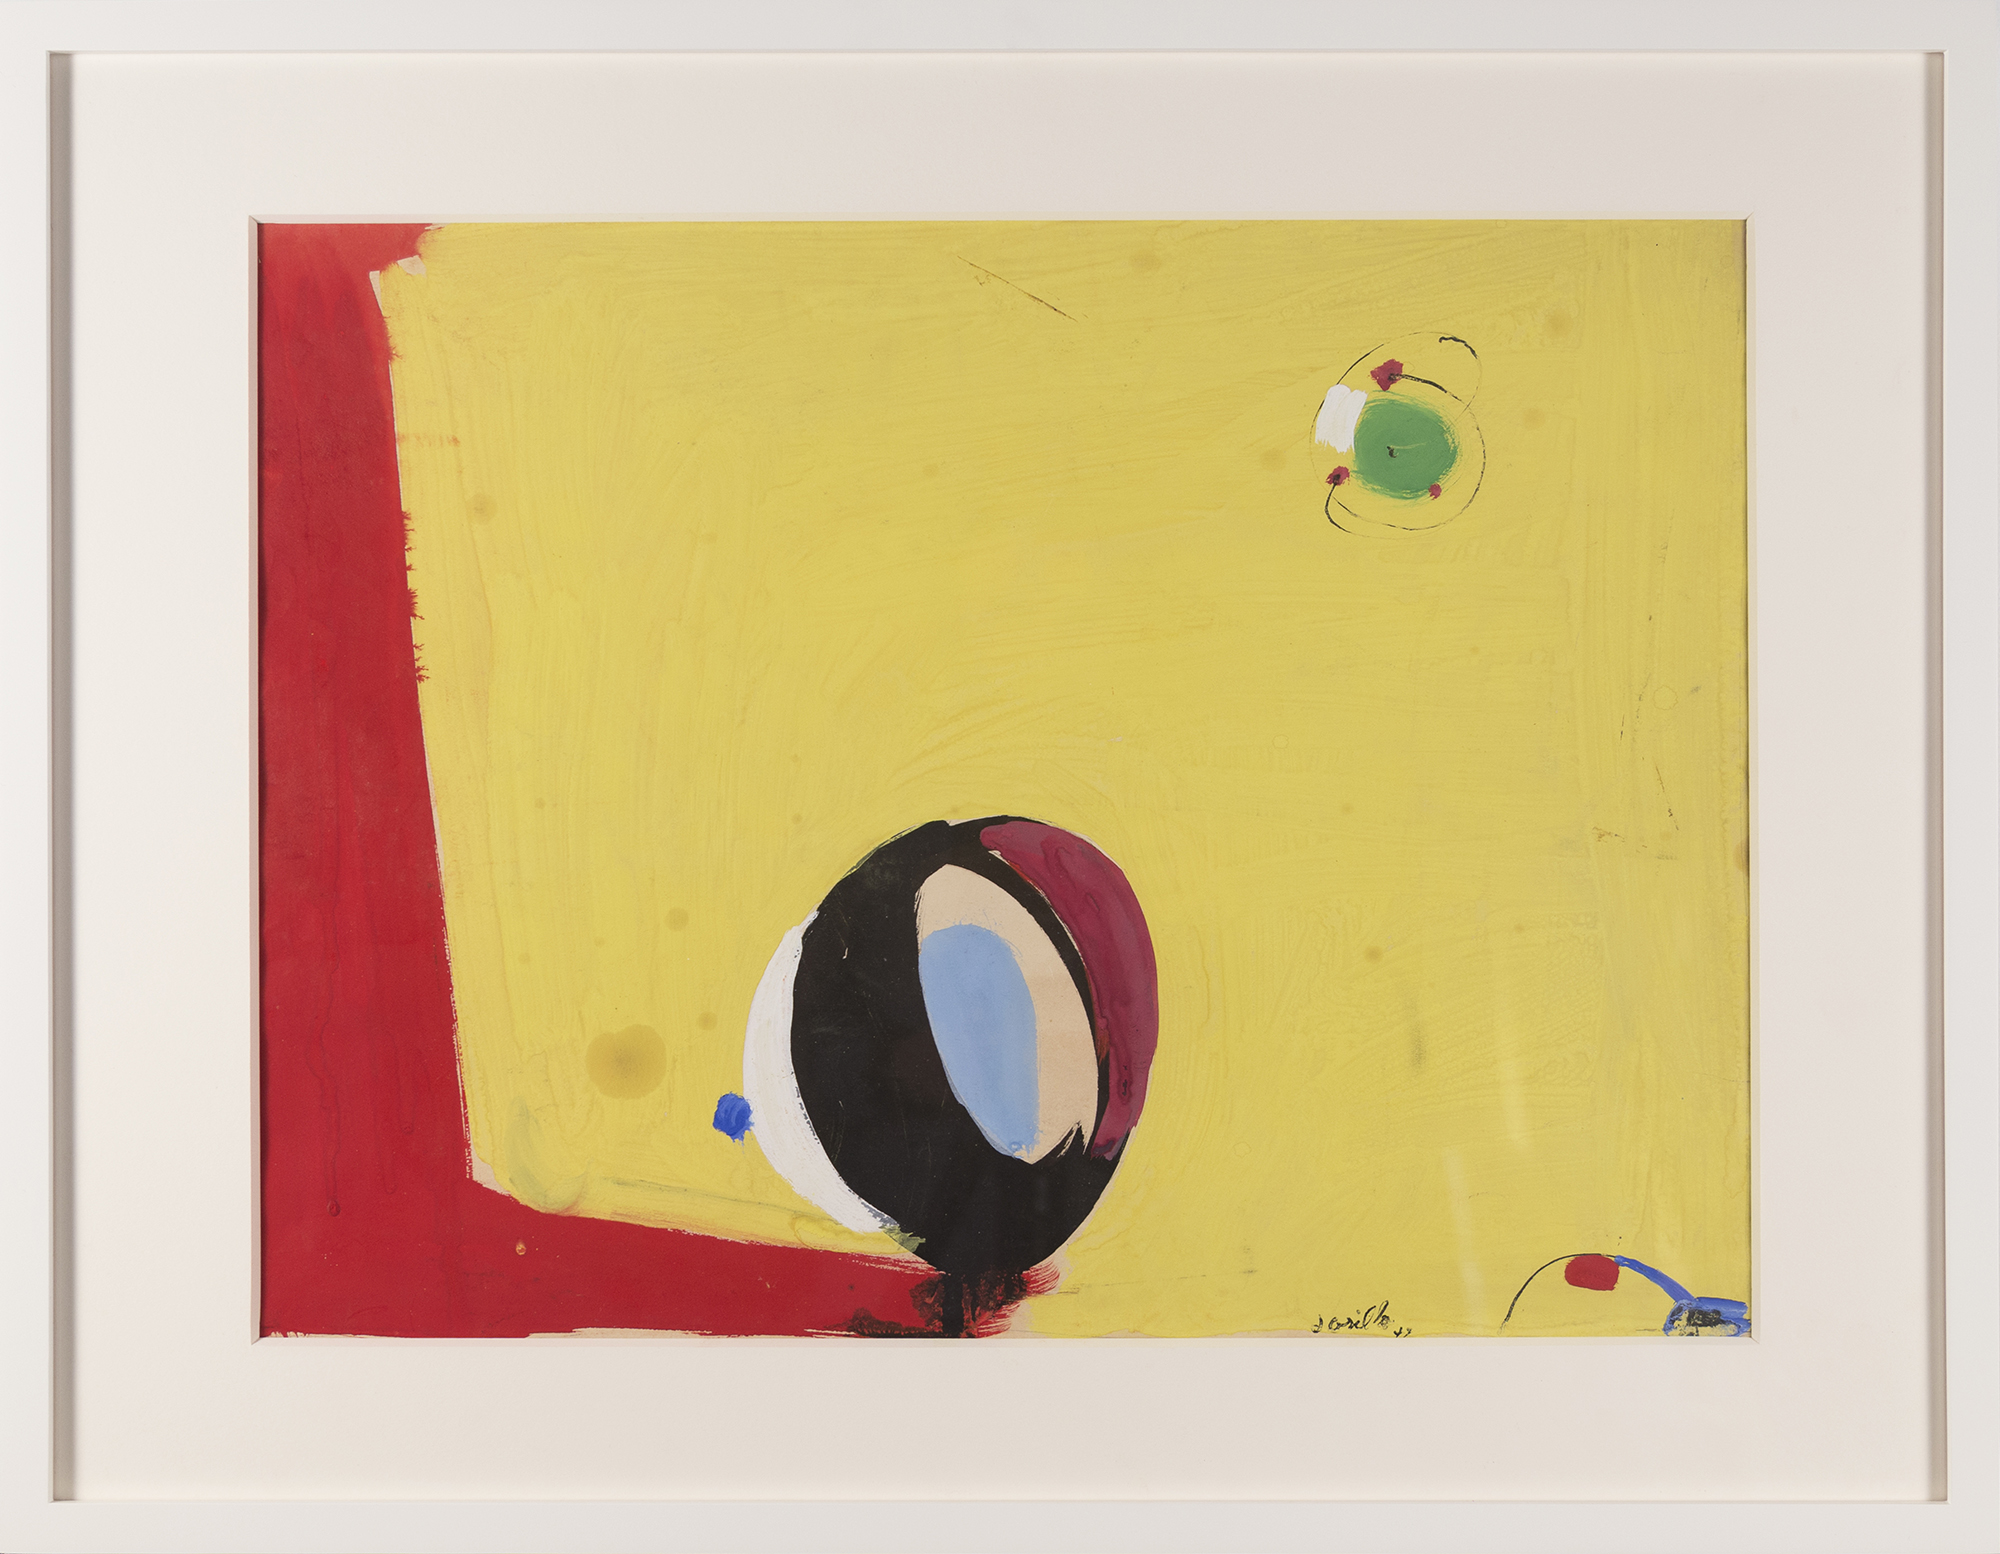 Untitled #69 , 1947, gouache on paper, 15 1/2 x 20 3/4 inches